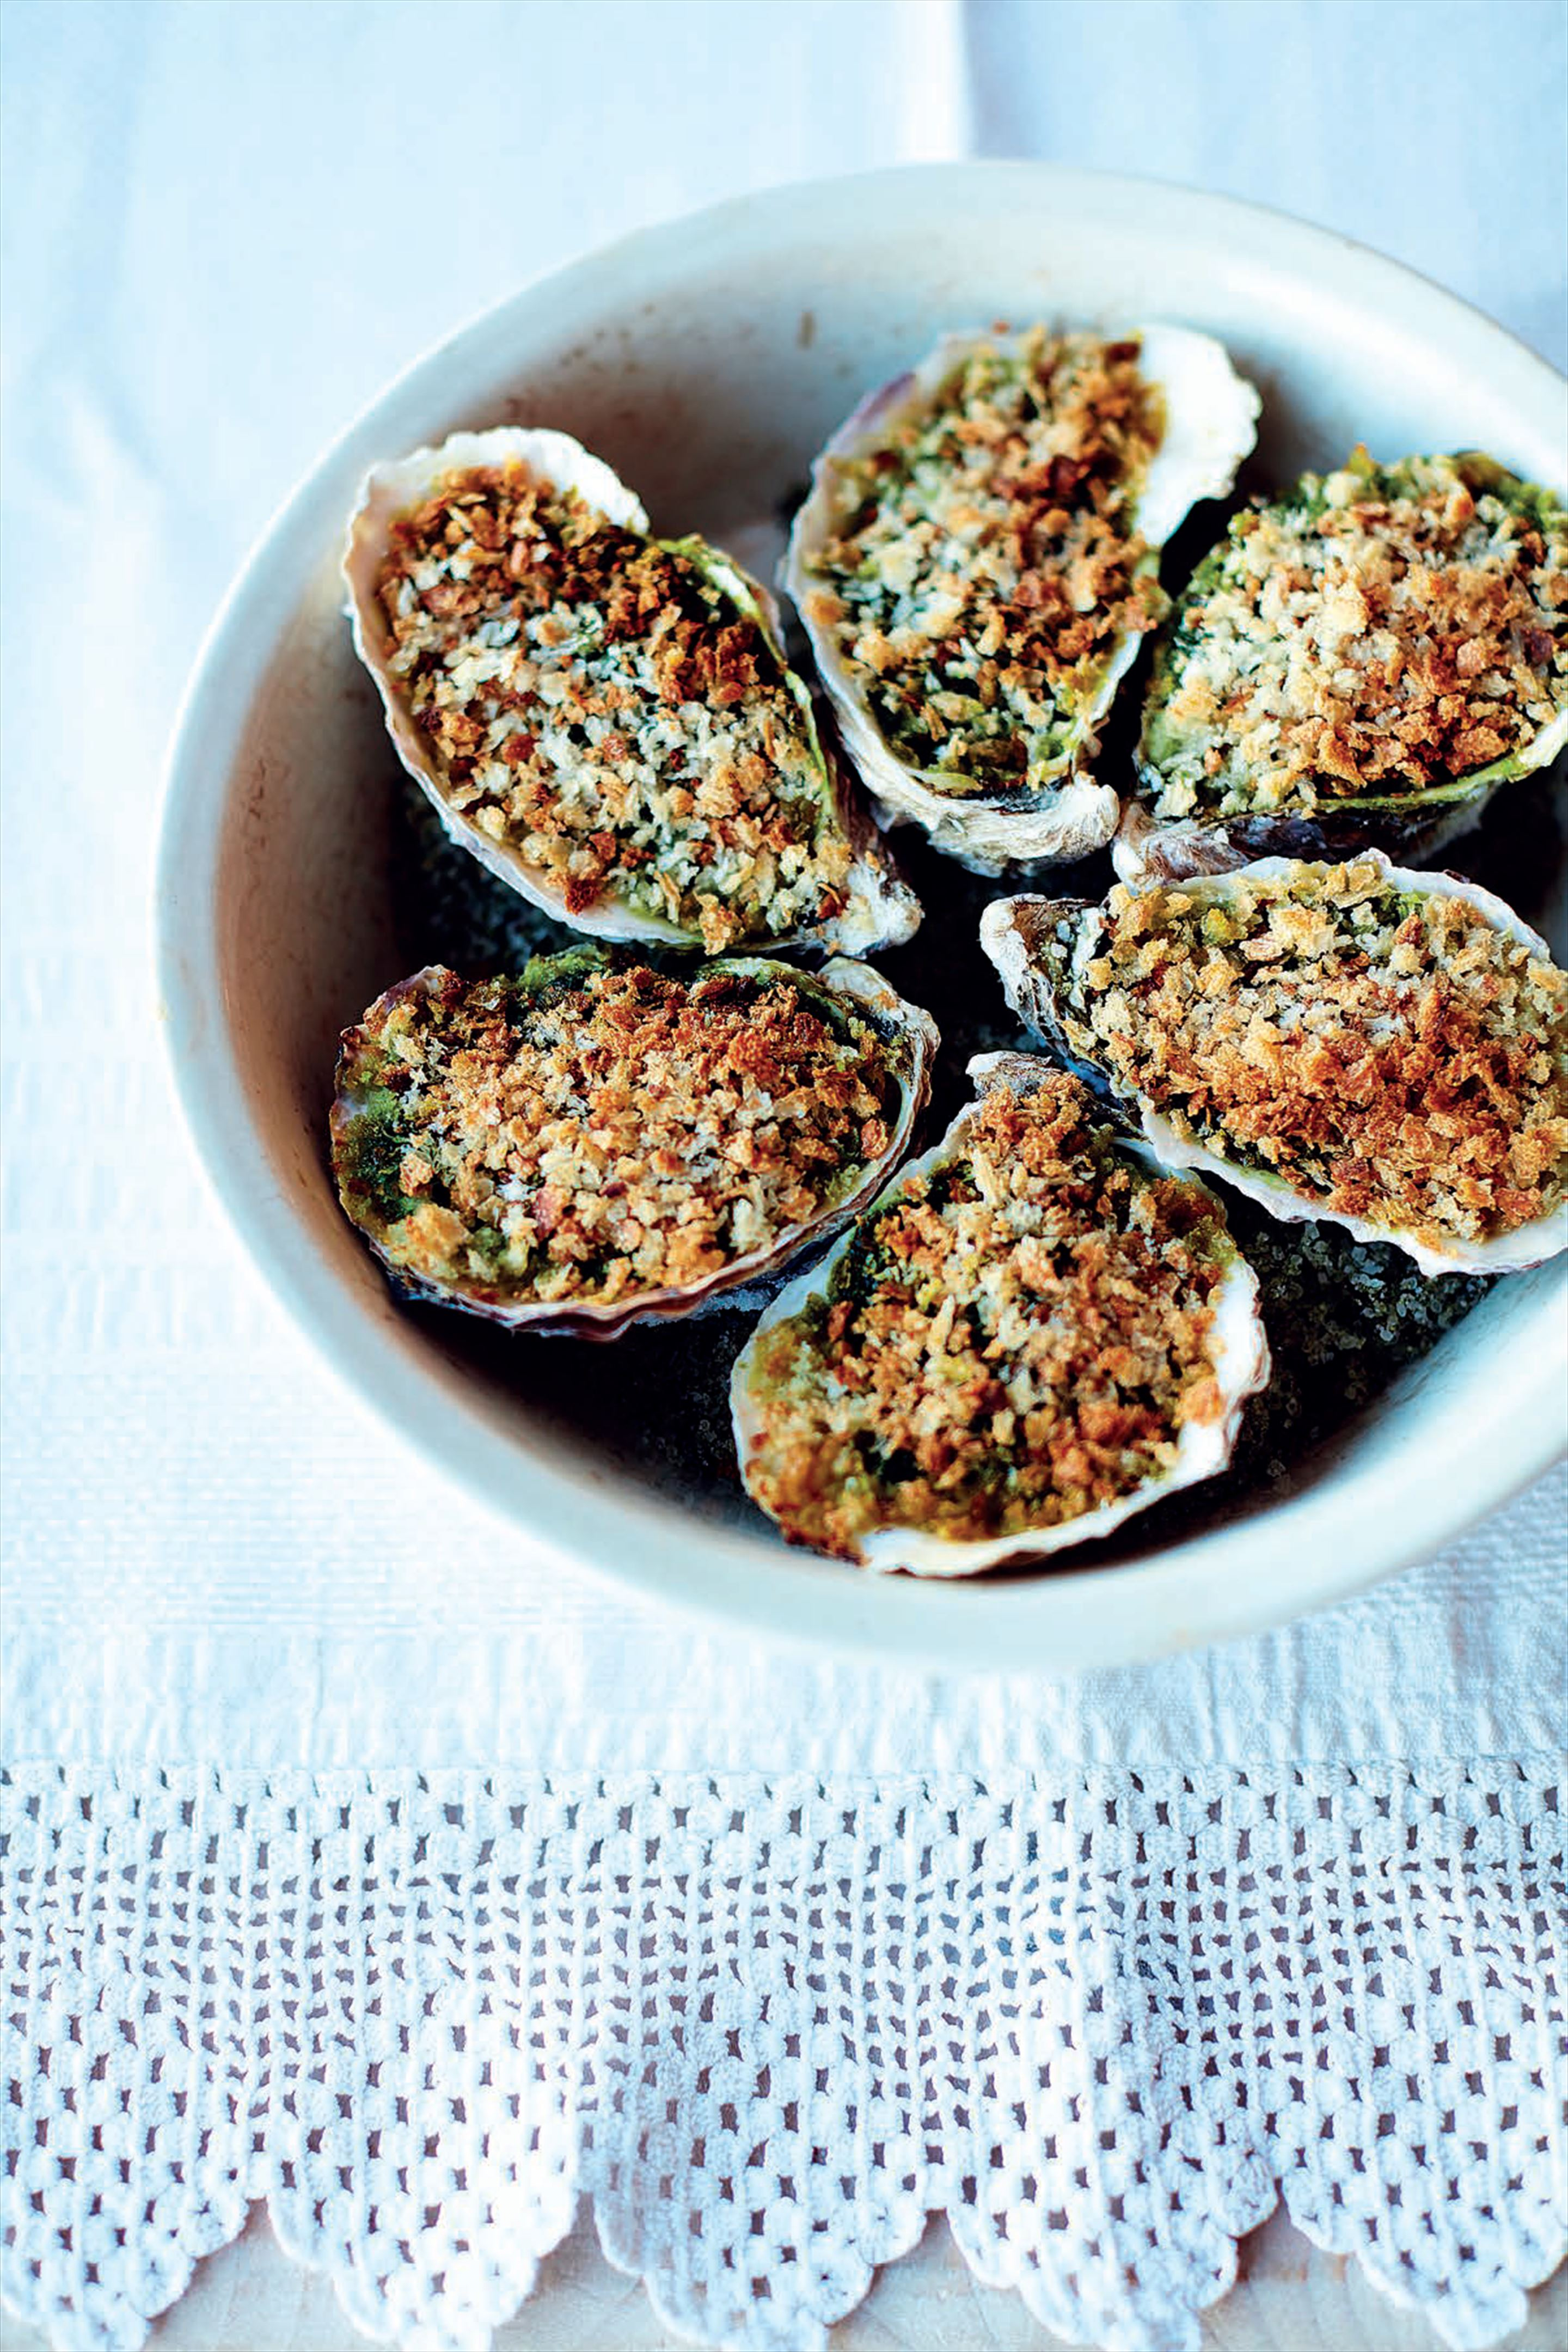 Baked oysters with watercress and anise butter